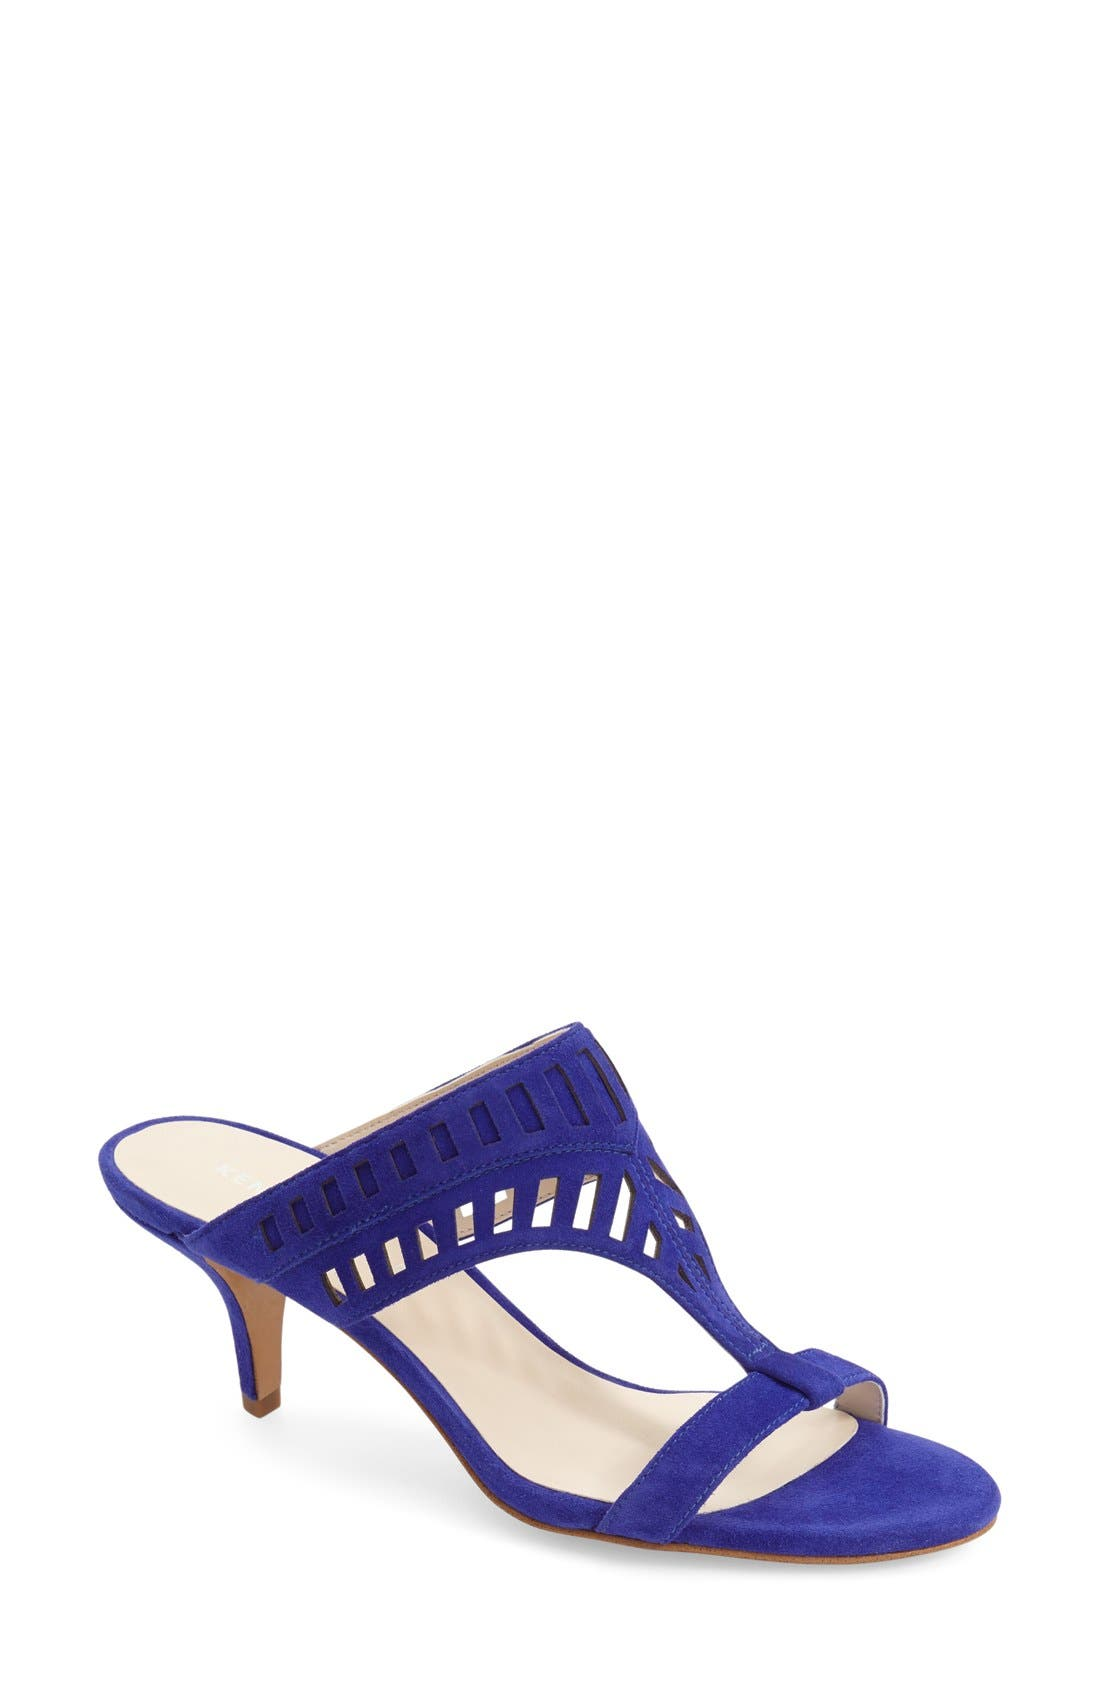 Alternate Image 1 Selected - Kenneth Cole New York 'Aria' Sandal (Women)